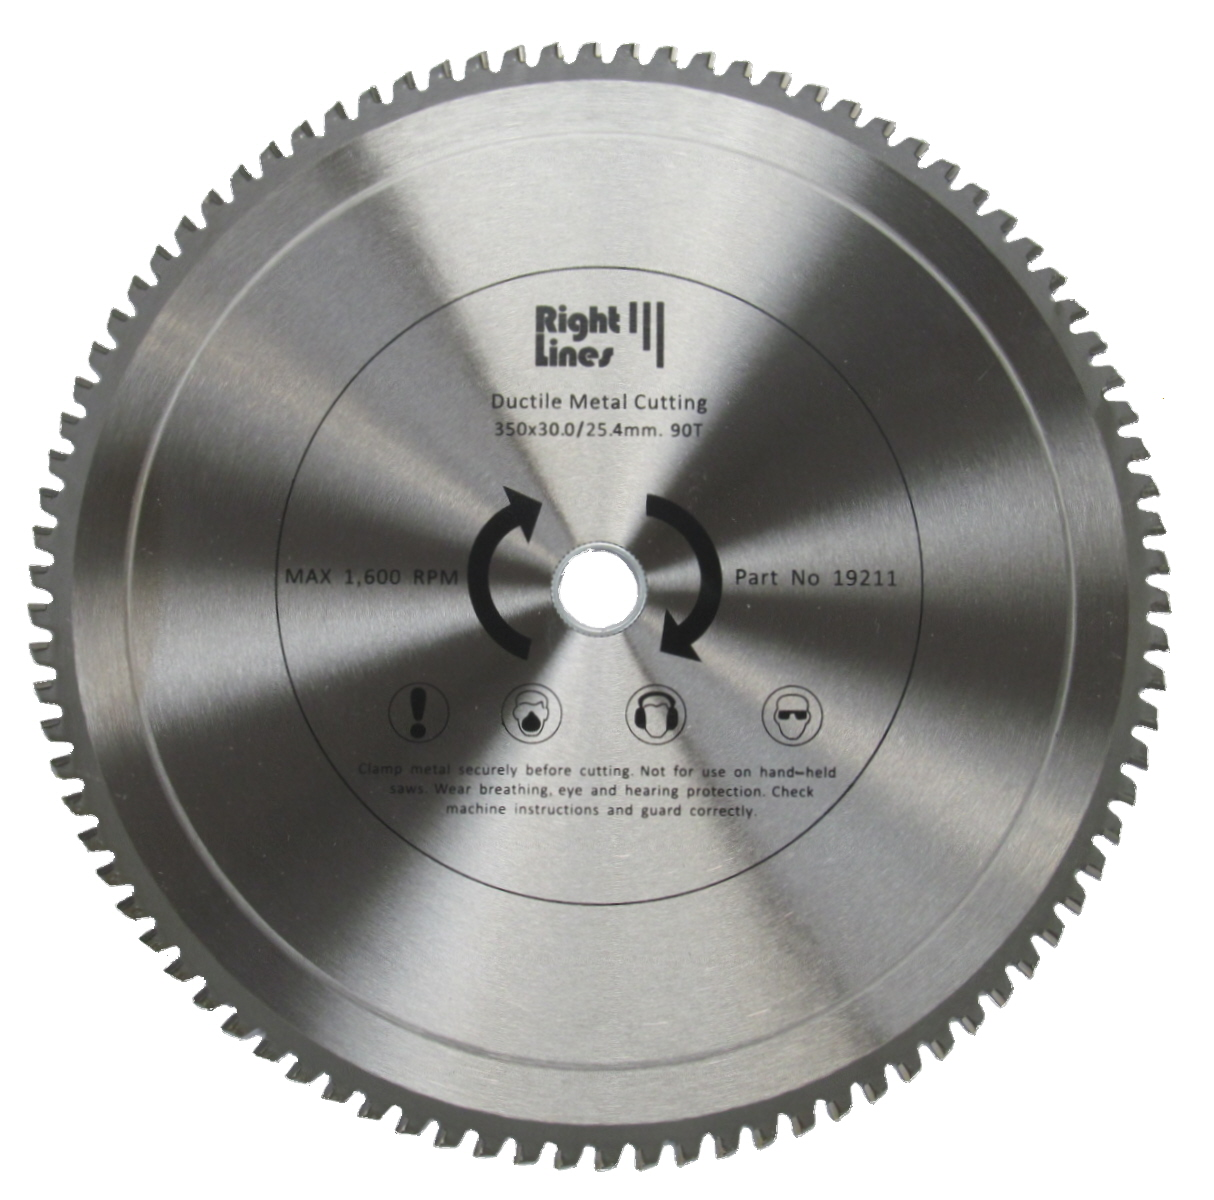 Abrasives World Metal Cutting Tct Saw Blades Right Lines